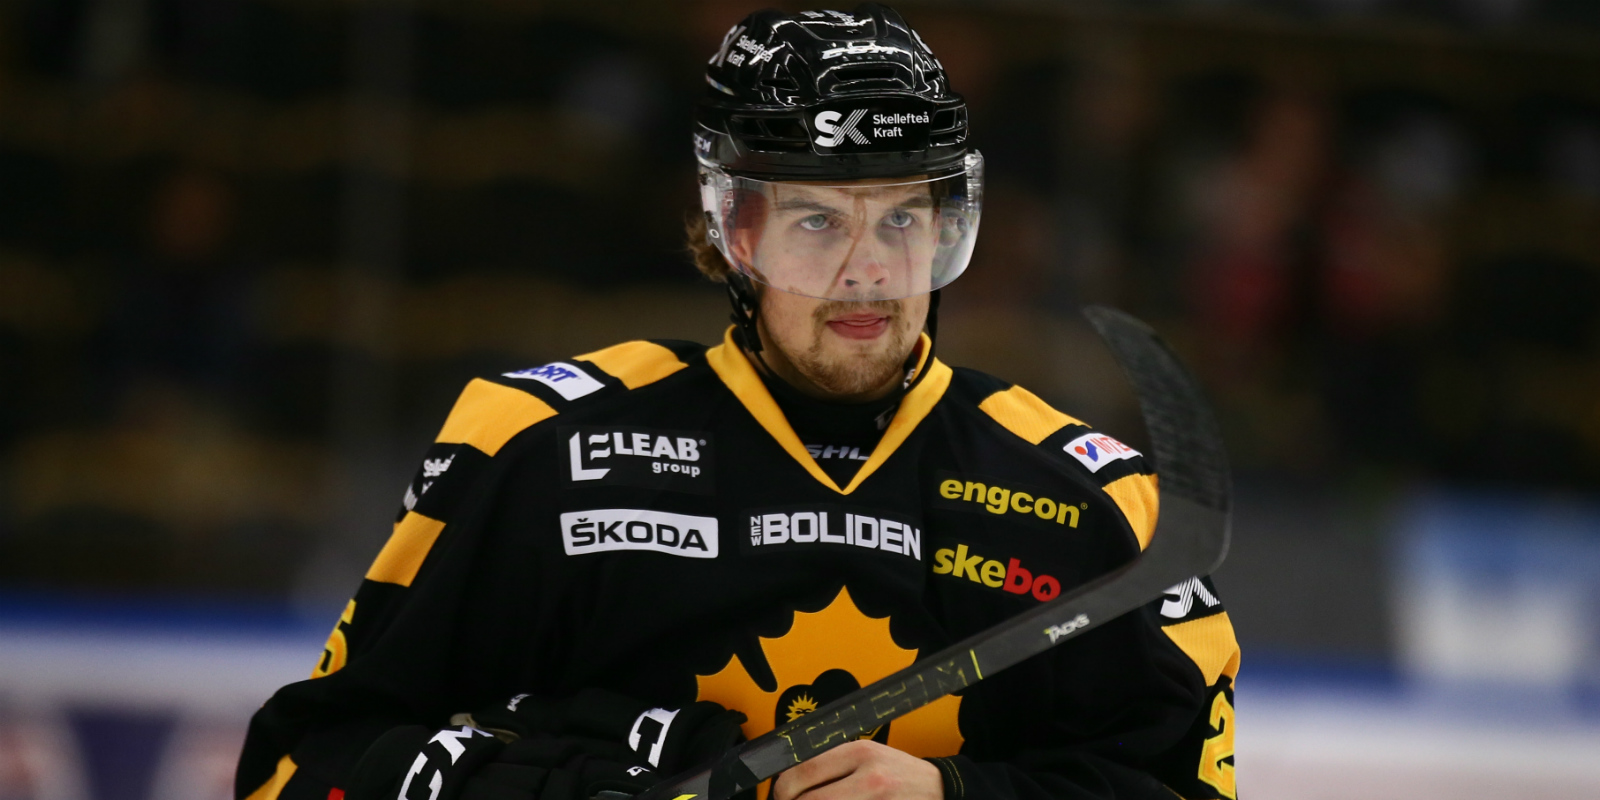 Axel Holmstrom - Photo Courtesy of www.hockeysverige.se